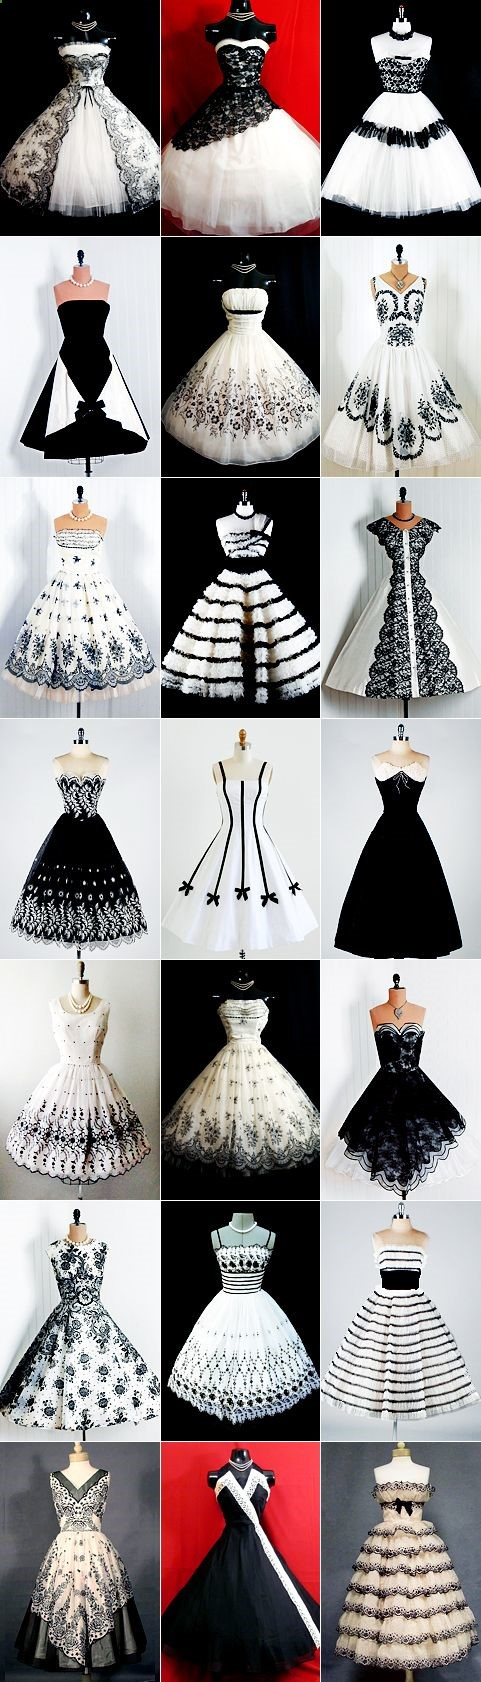 S prom and party dresses i should have been born in the ss